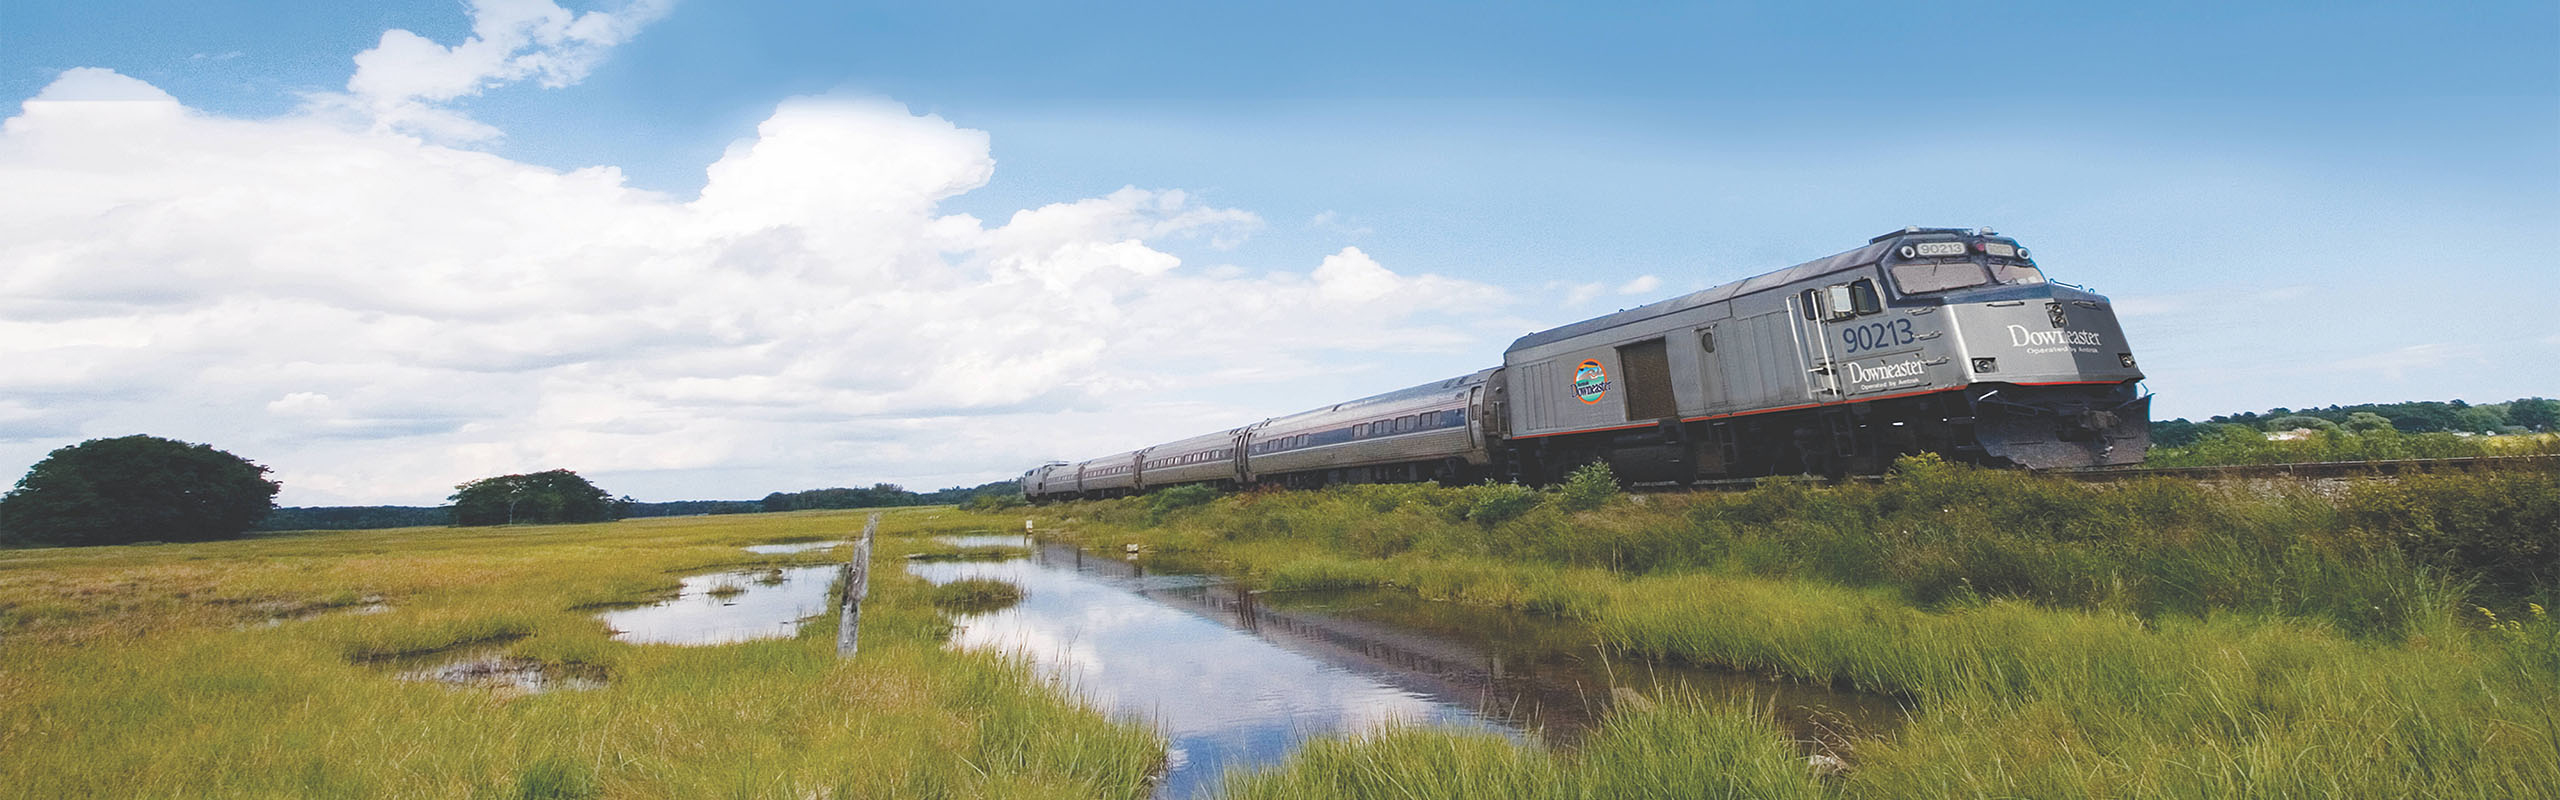 Amtrak Downeaster Spring Train